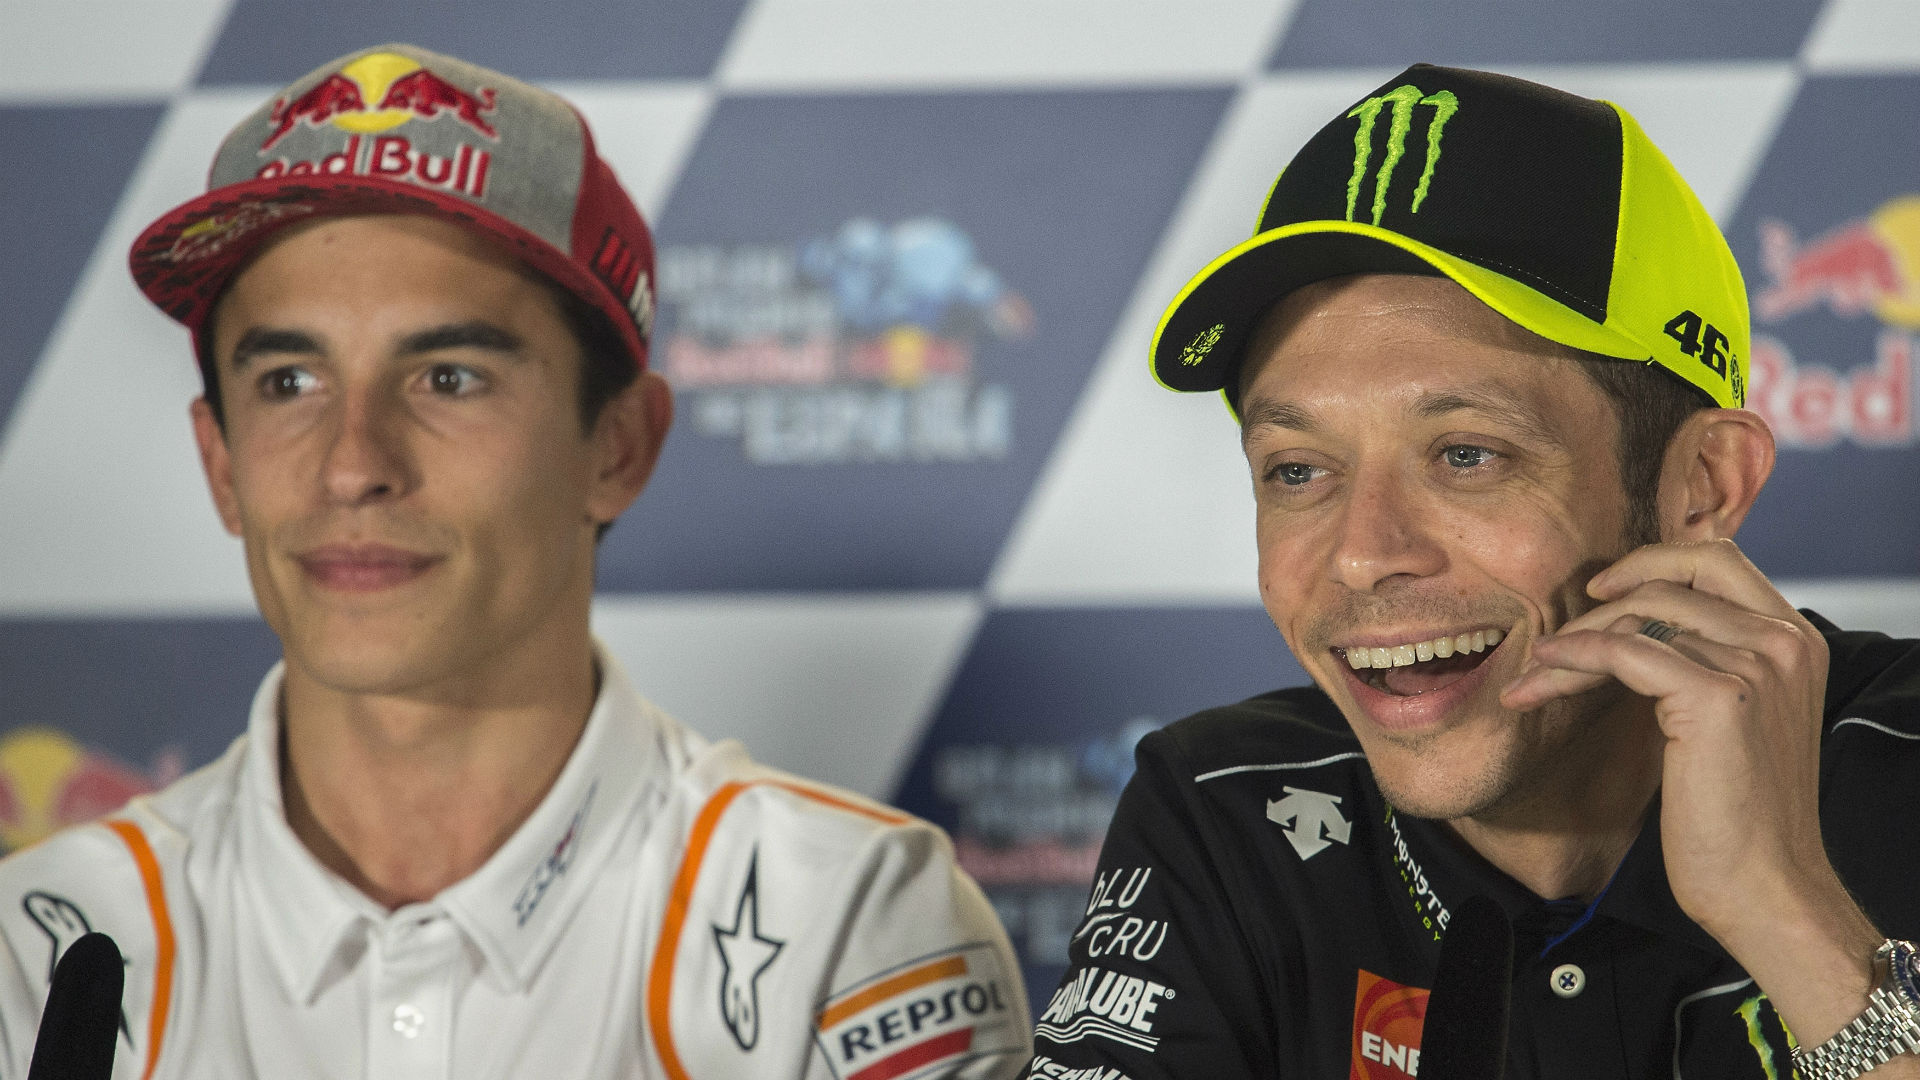 MotoGP Raceweek: Rossi thinks Marquez is close to perfect season...but the reigning champion doesn't